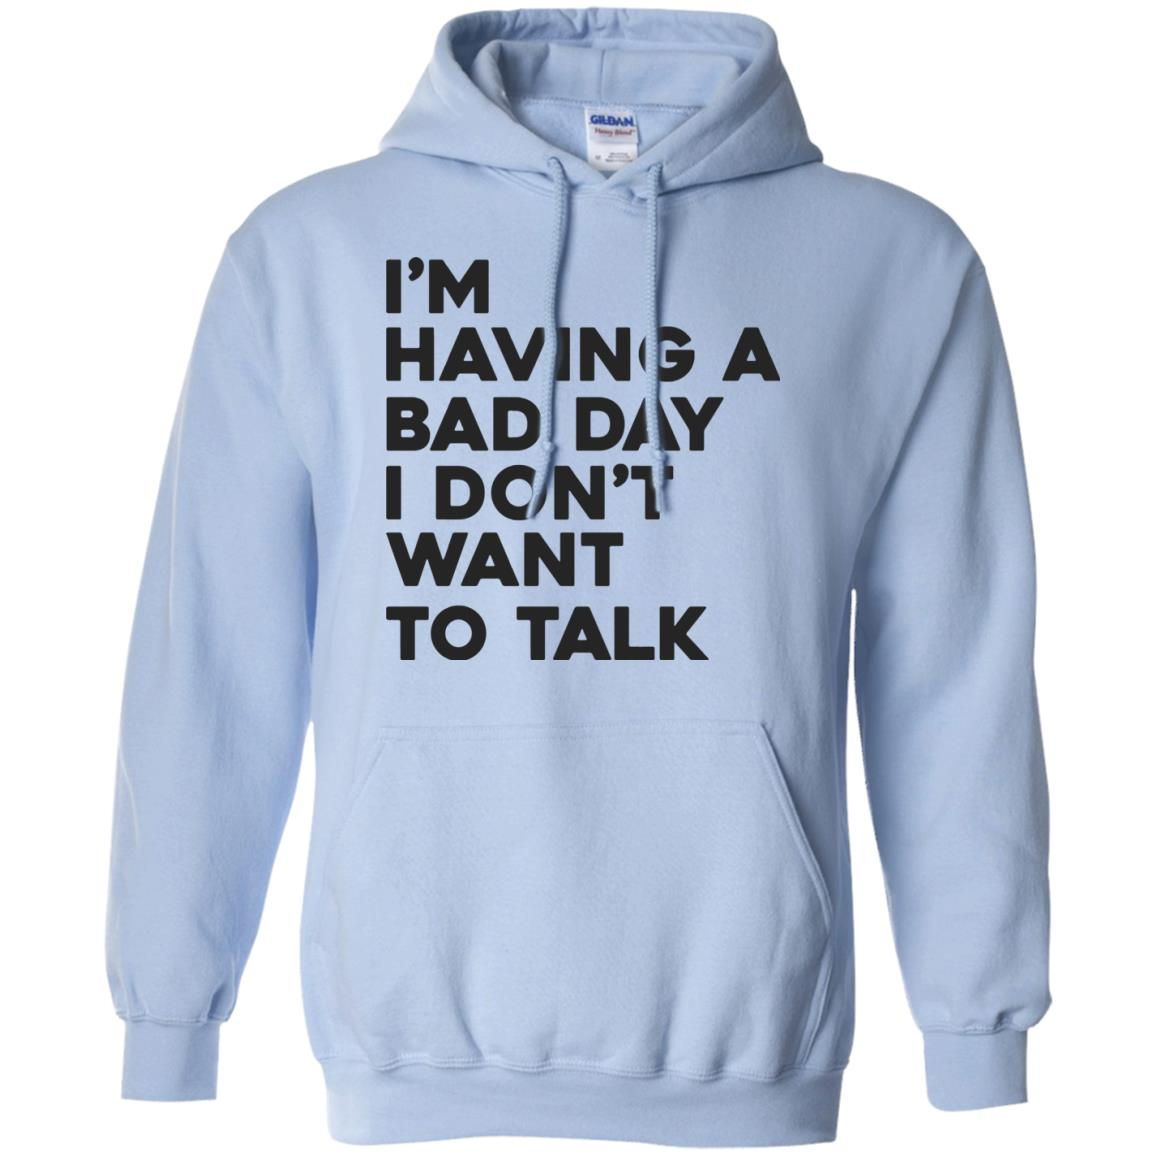 image 240px I'm having a bad day I don't want to talk t shirt, hoodies, tank